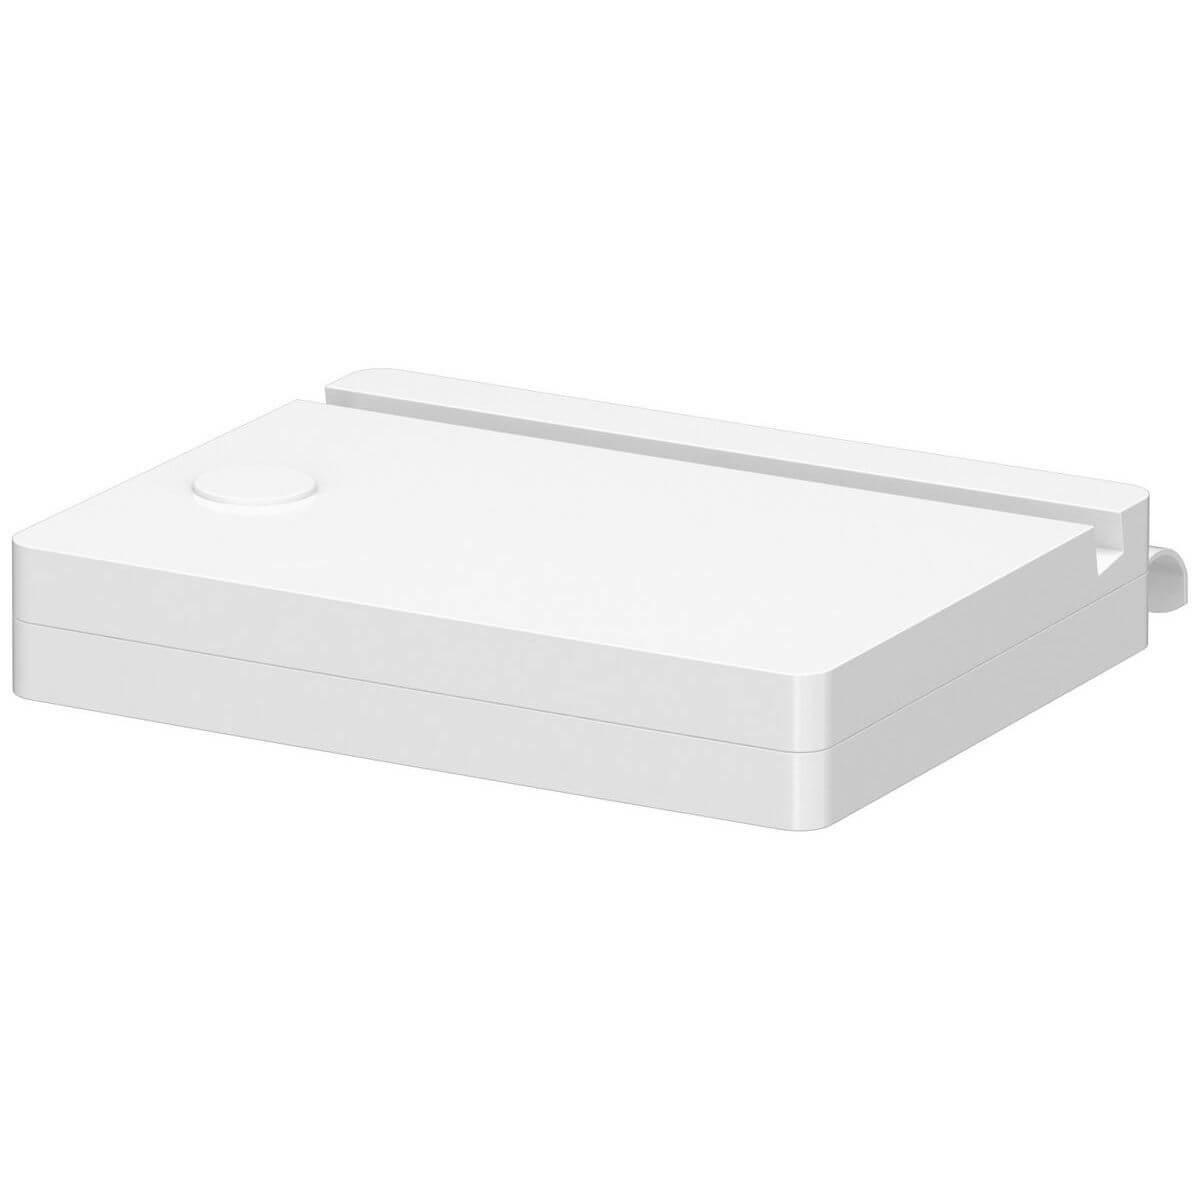 CLICKON by Flexa Support tablette tactile Blanc pour lit White